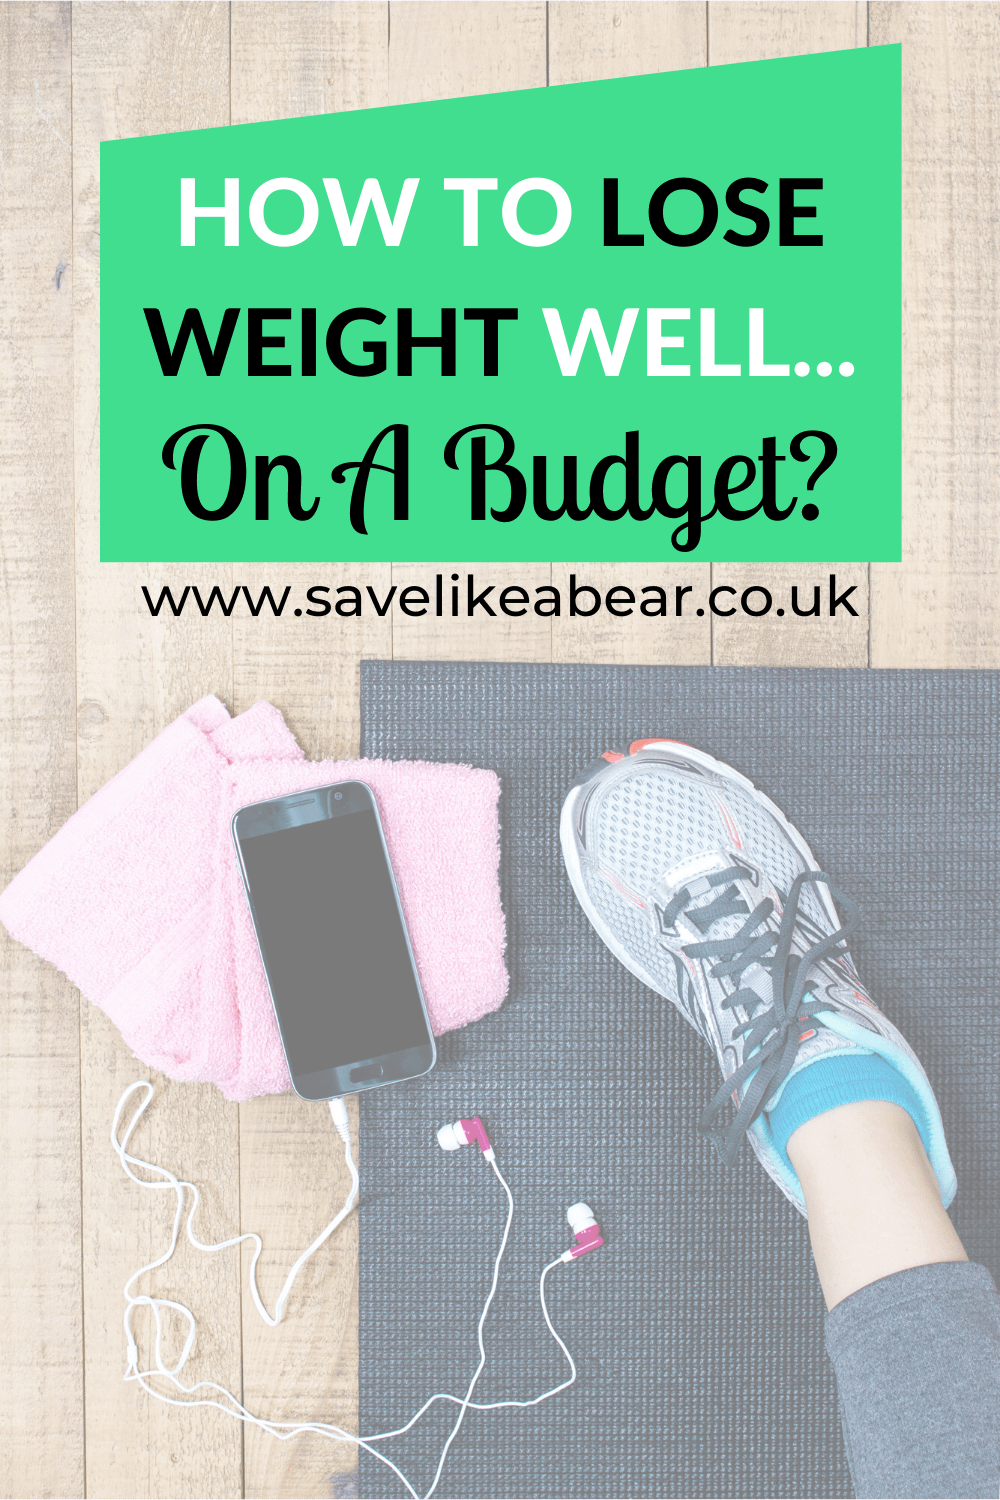 How to lose weight well on a budget by savelikeabear.co.uk